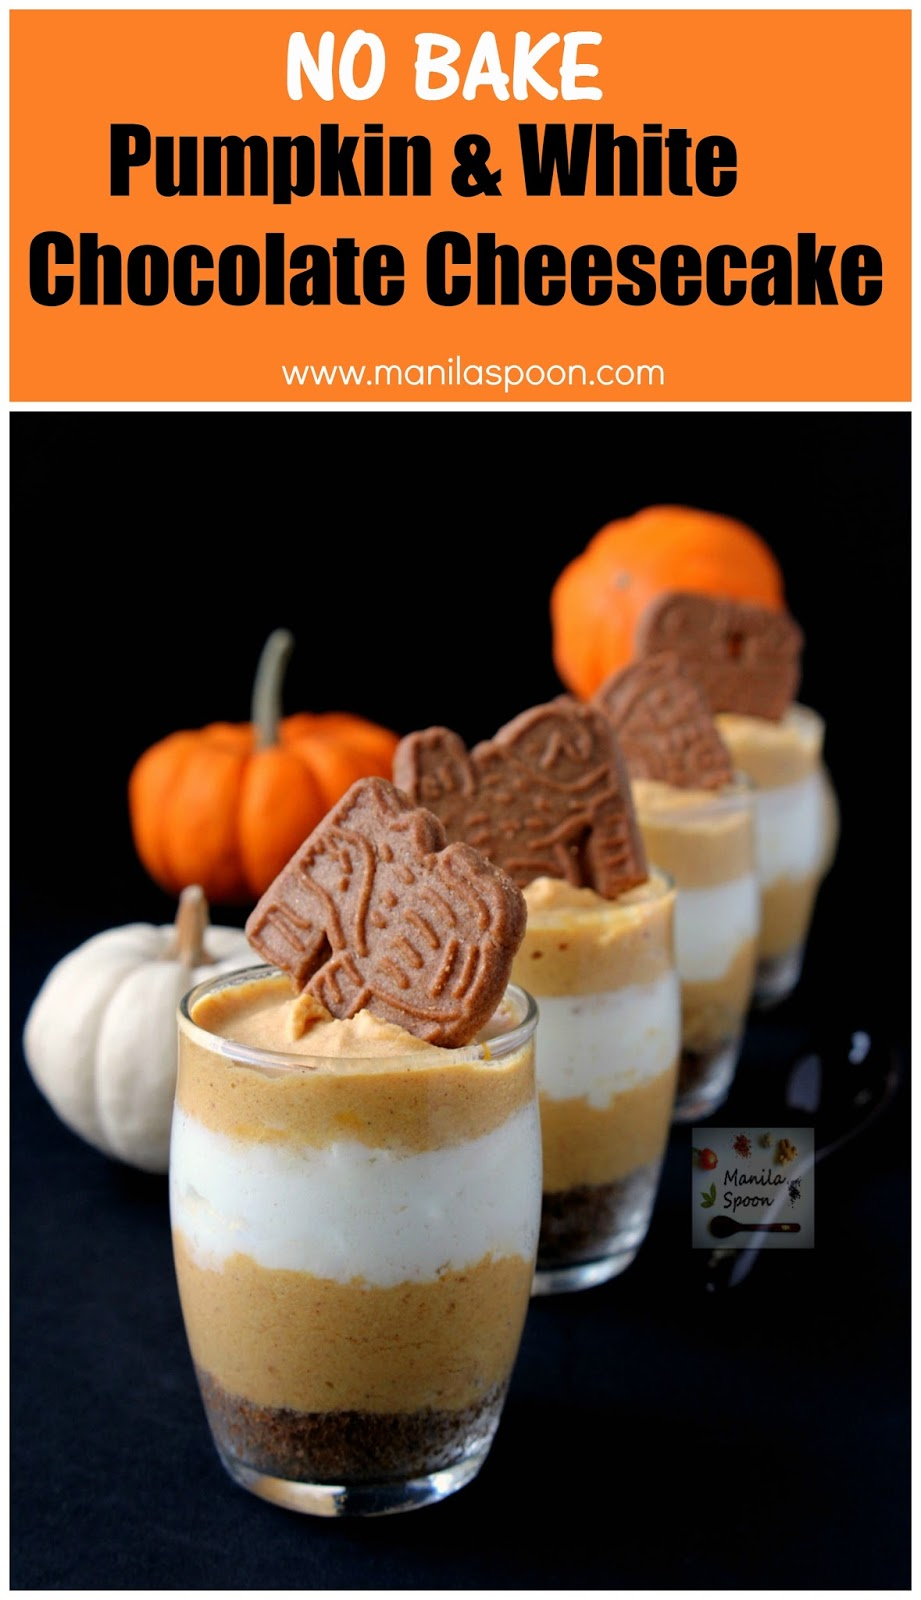 This is seriously a delicious fall or winter treat! With a spiced cookie crust and a layered pumpkin and white chocolate cheesecake that tastes out of this world - it is a winning dessert for the holidays and beyond! No Bake Individual Pumpkin White Chocolate Cheesecake | manilaspoon.com